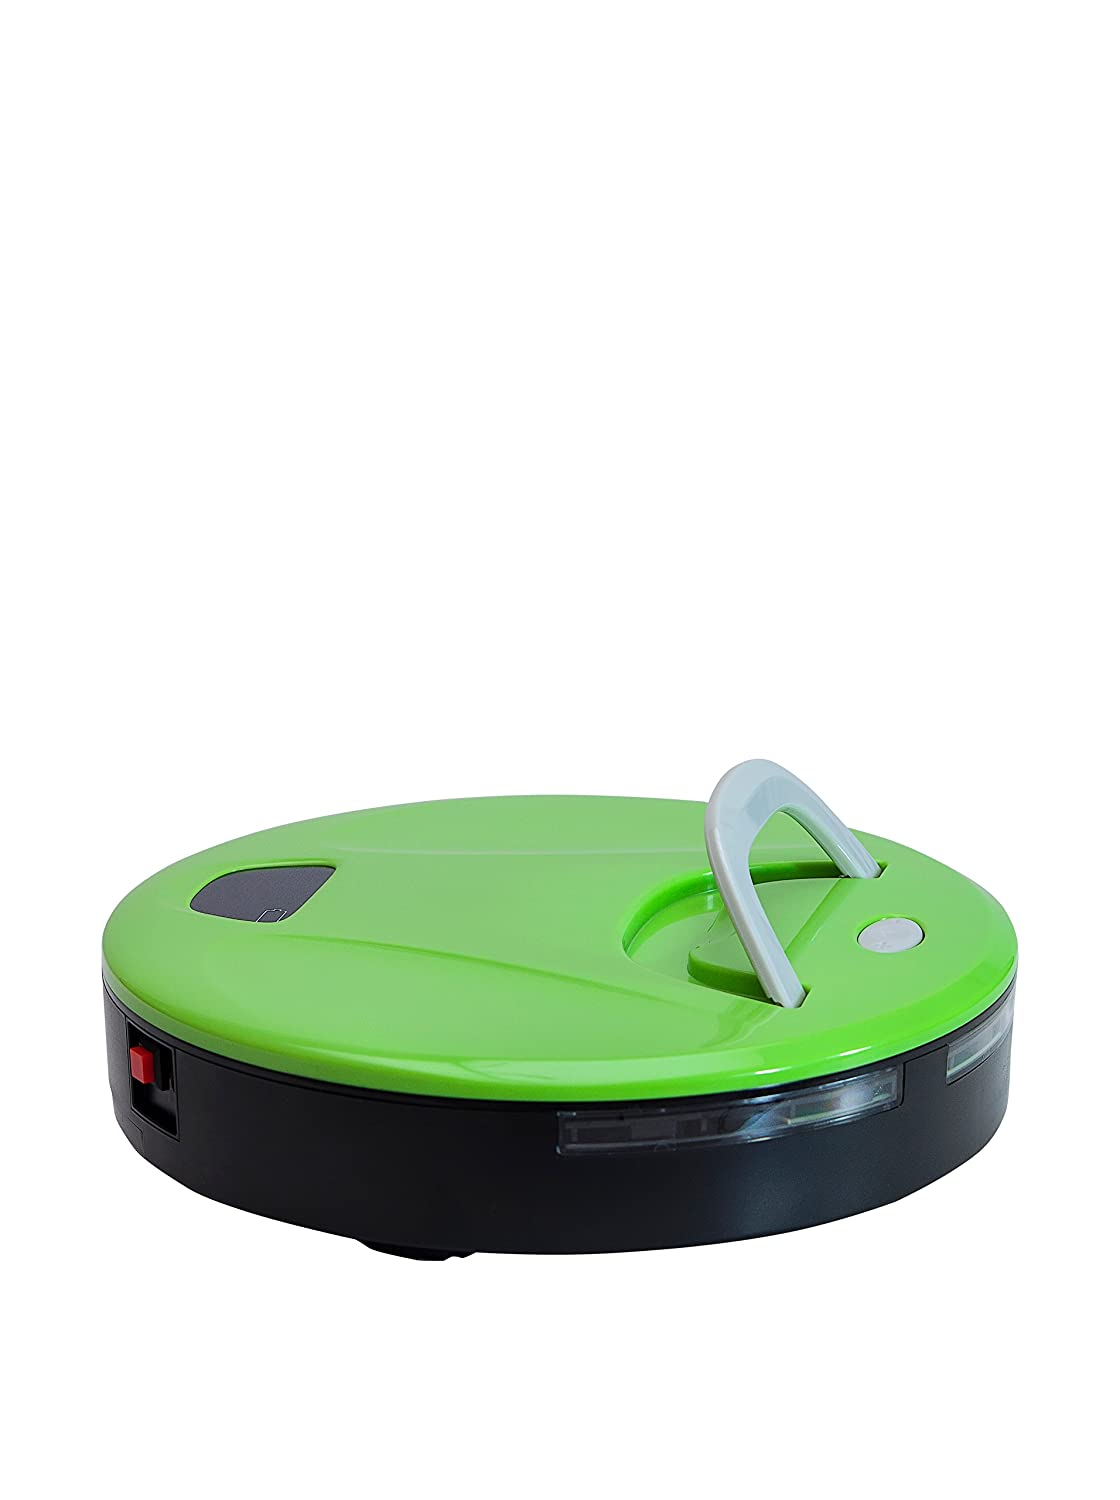 Tango Robot Aspirador Eco Slim: Amazon.es